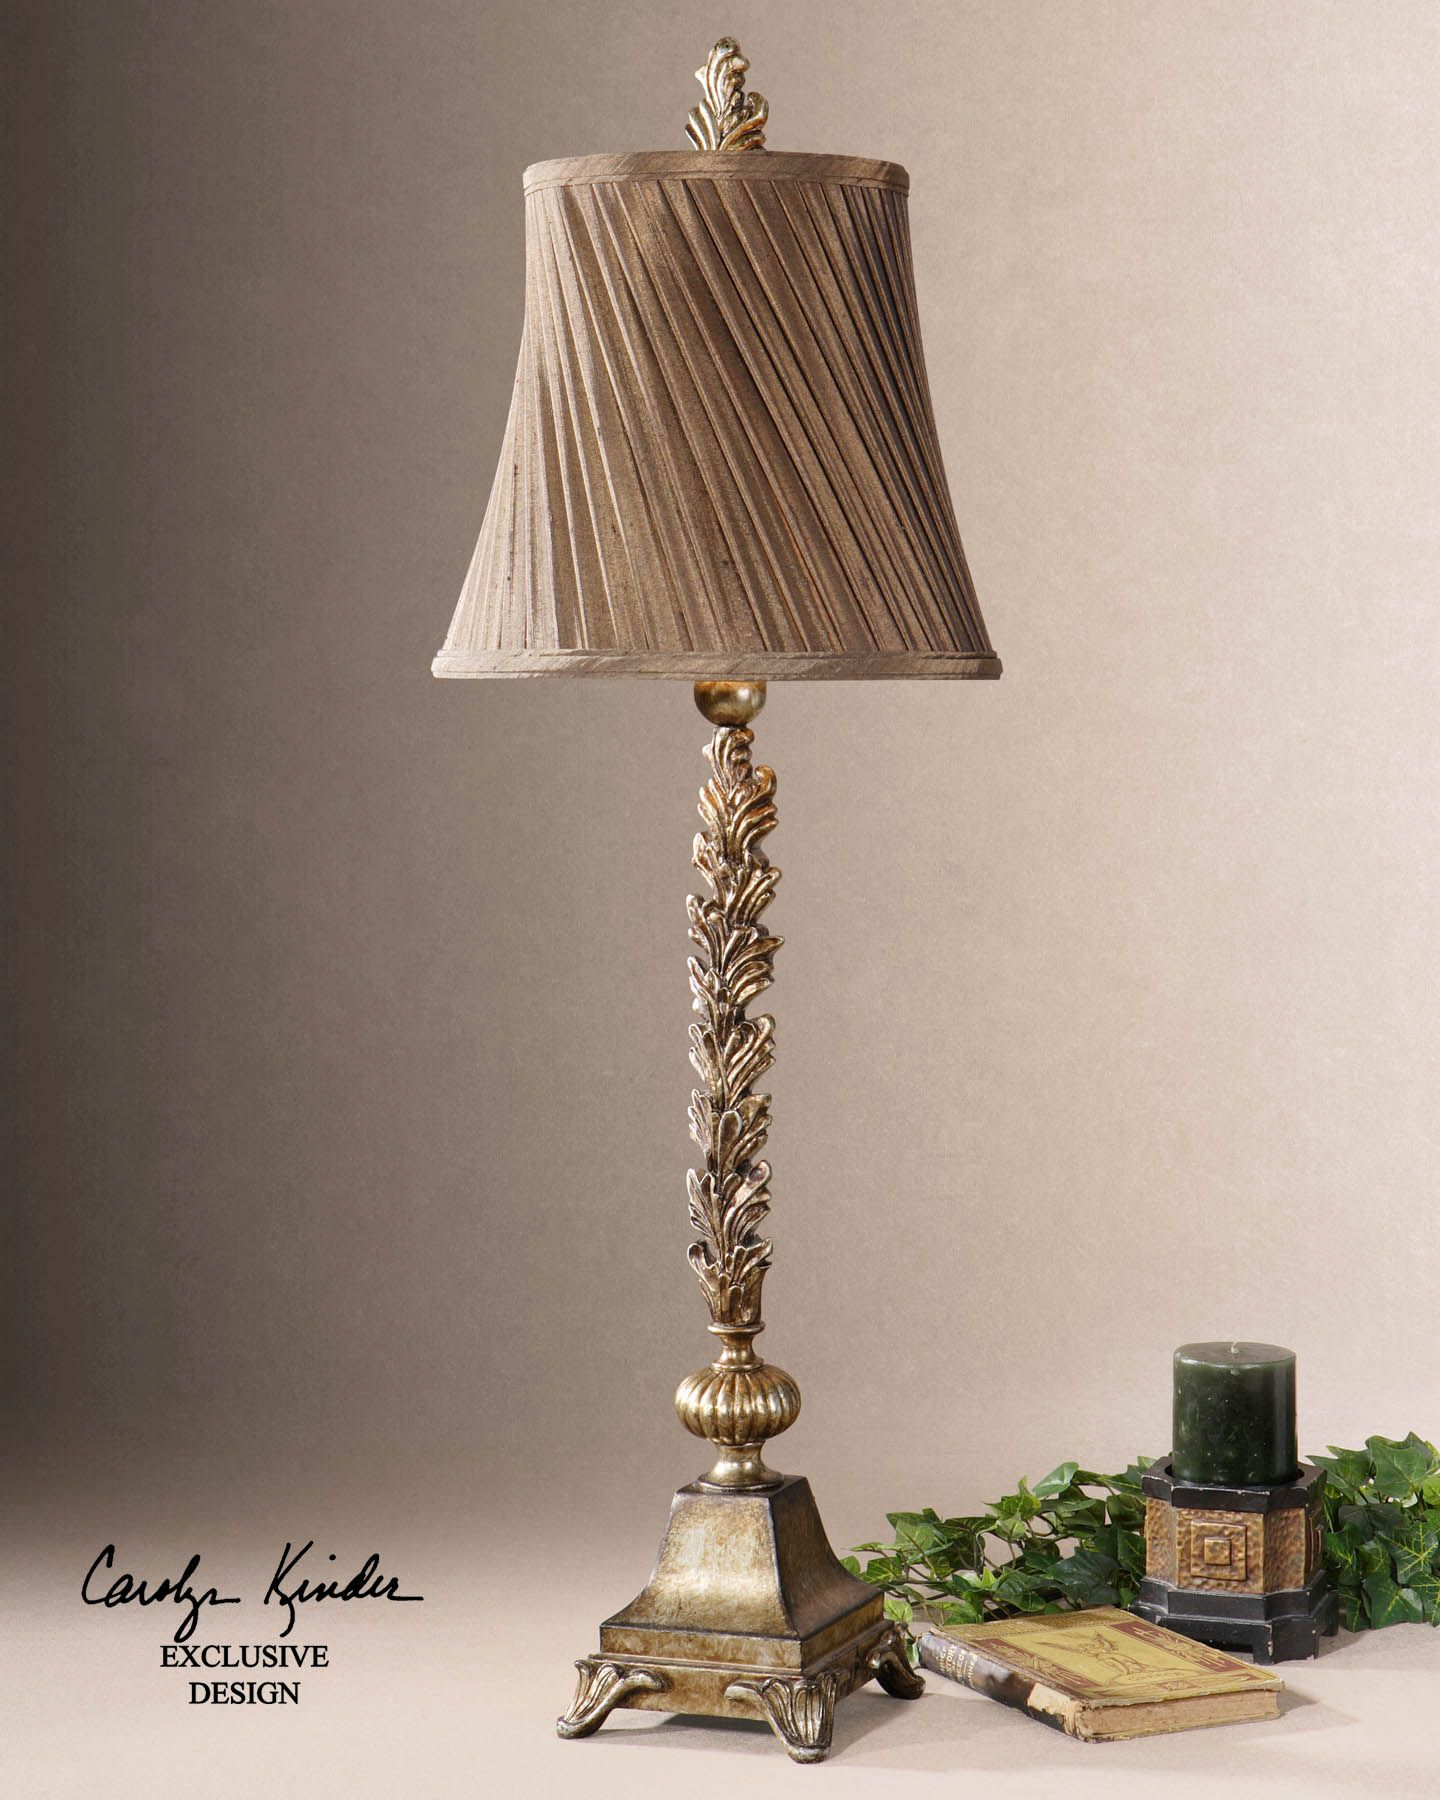 Old worldtuscanmediterranean decor french country leaf design buffet table lamp tuscan old world ebay